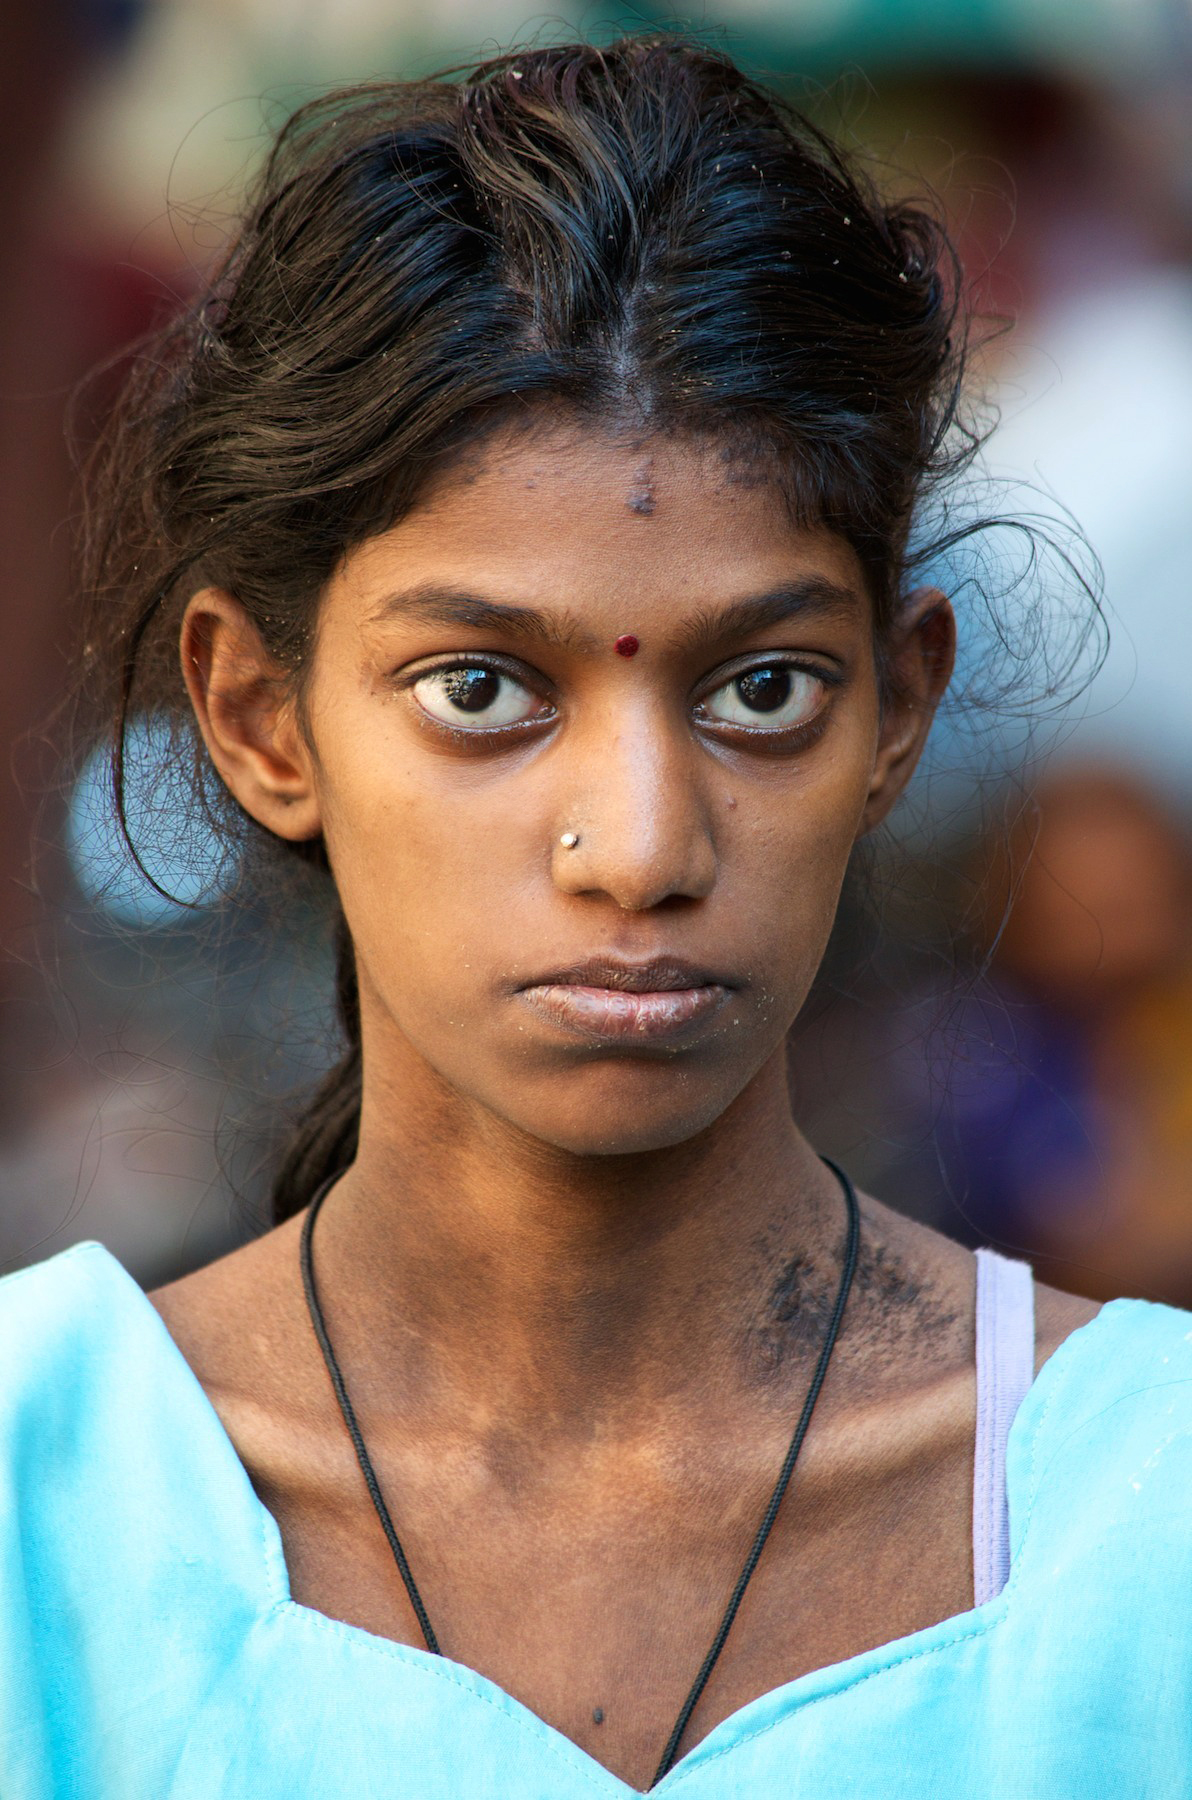 Slum girl photo